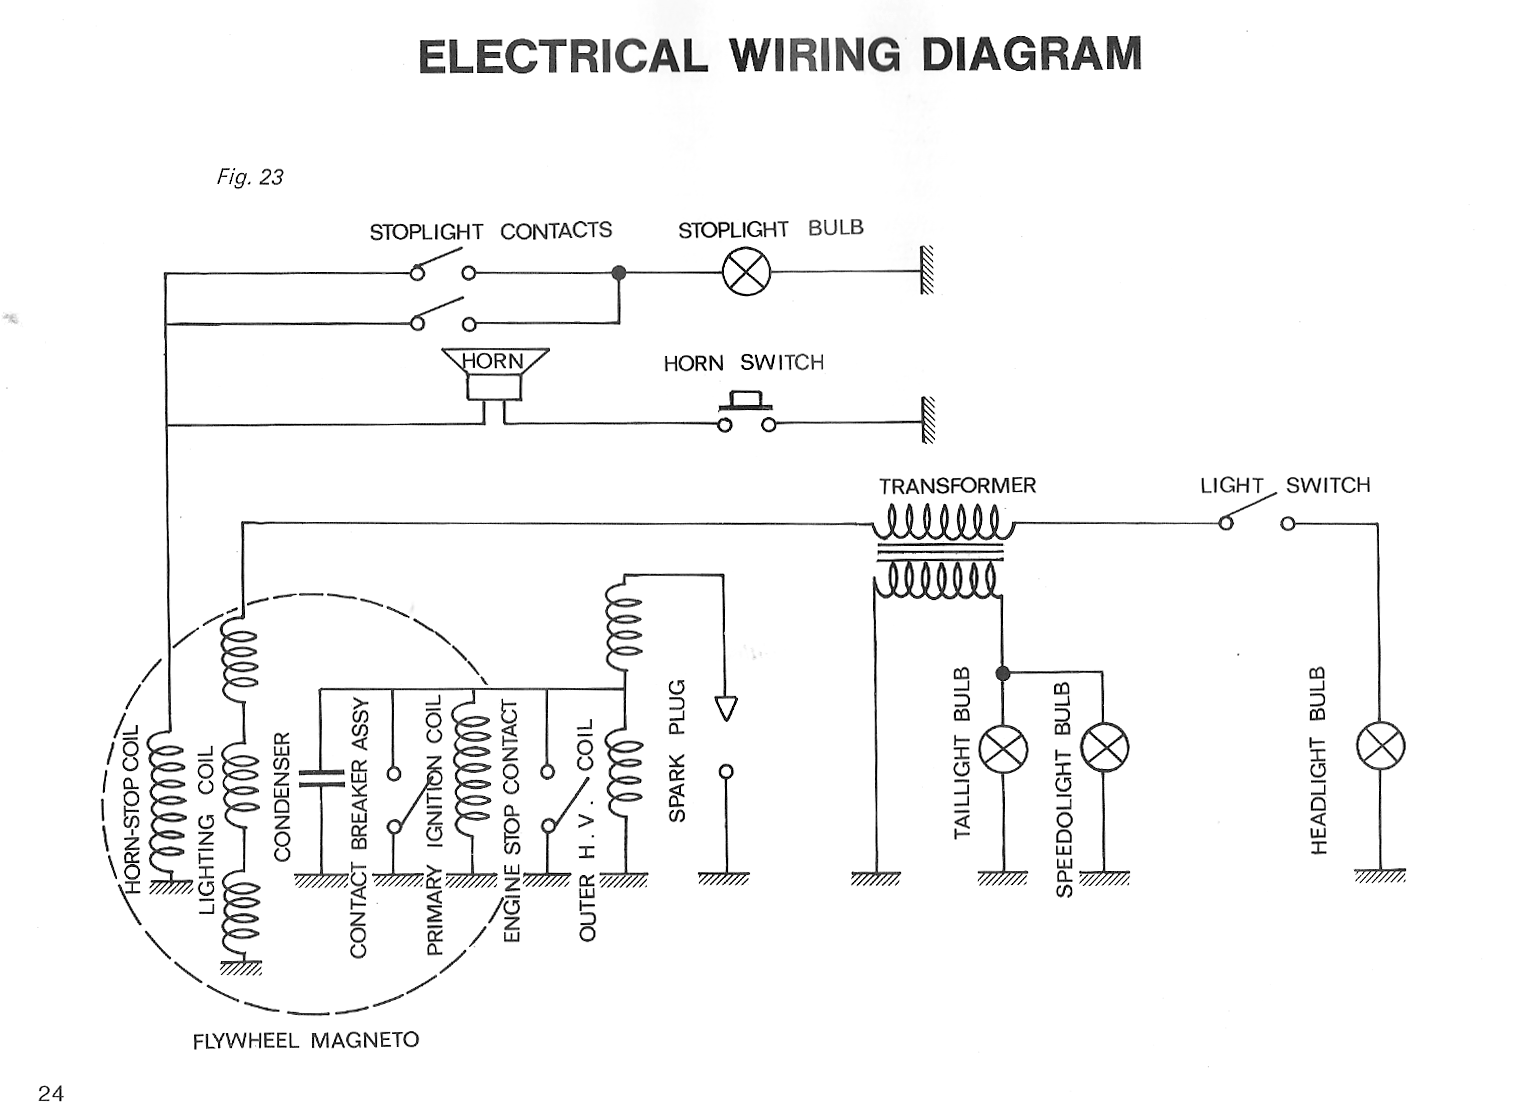 peugeot trekker wiring diagram peugeot engine wiring diagram